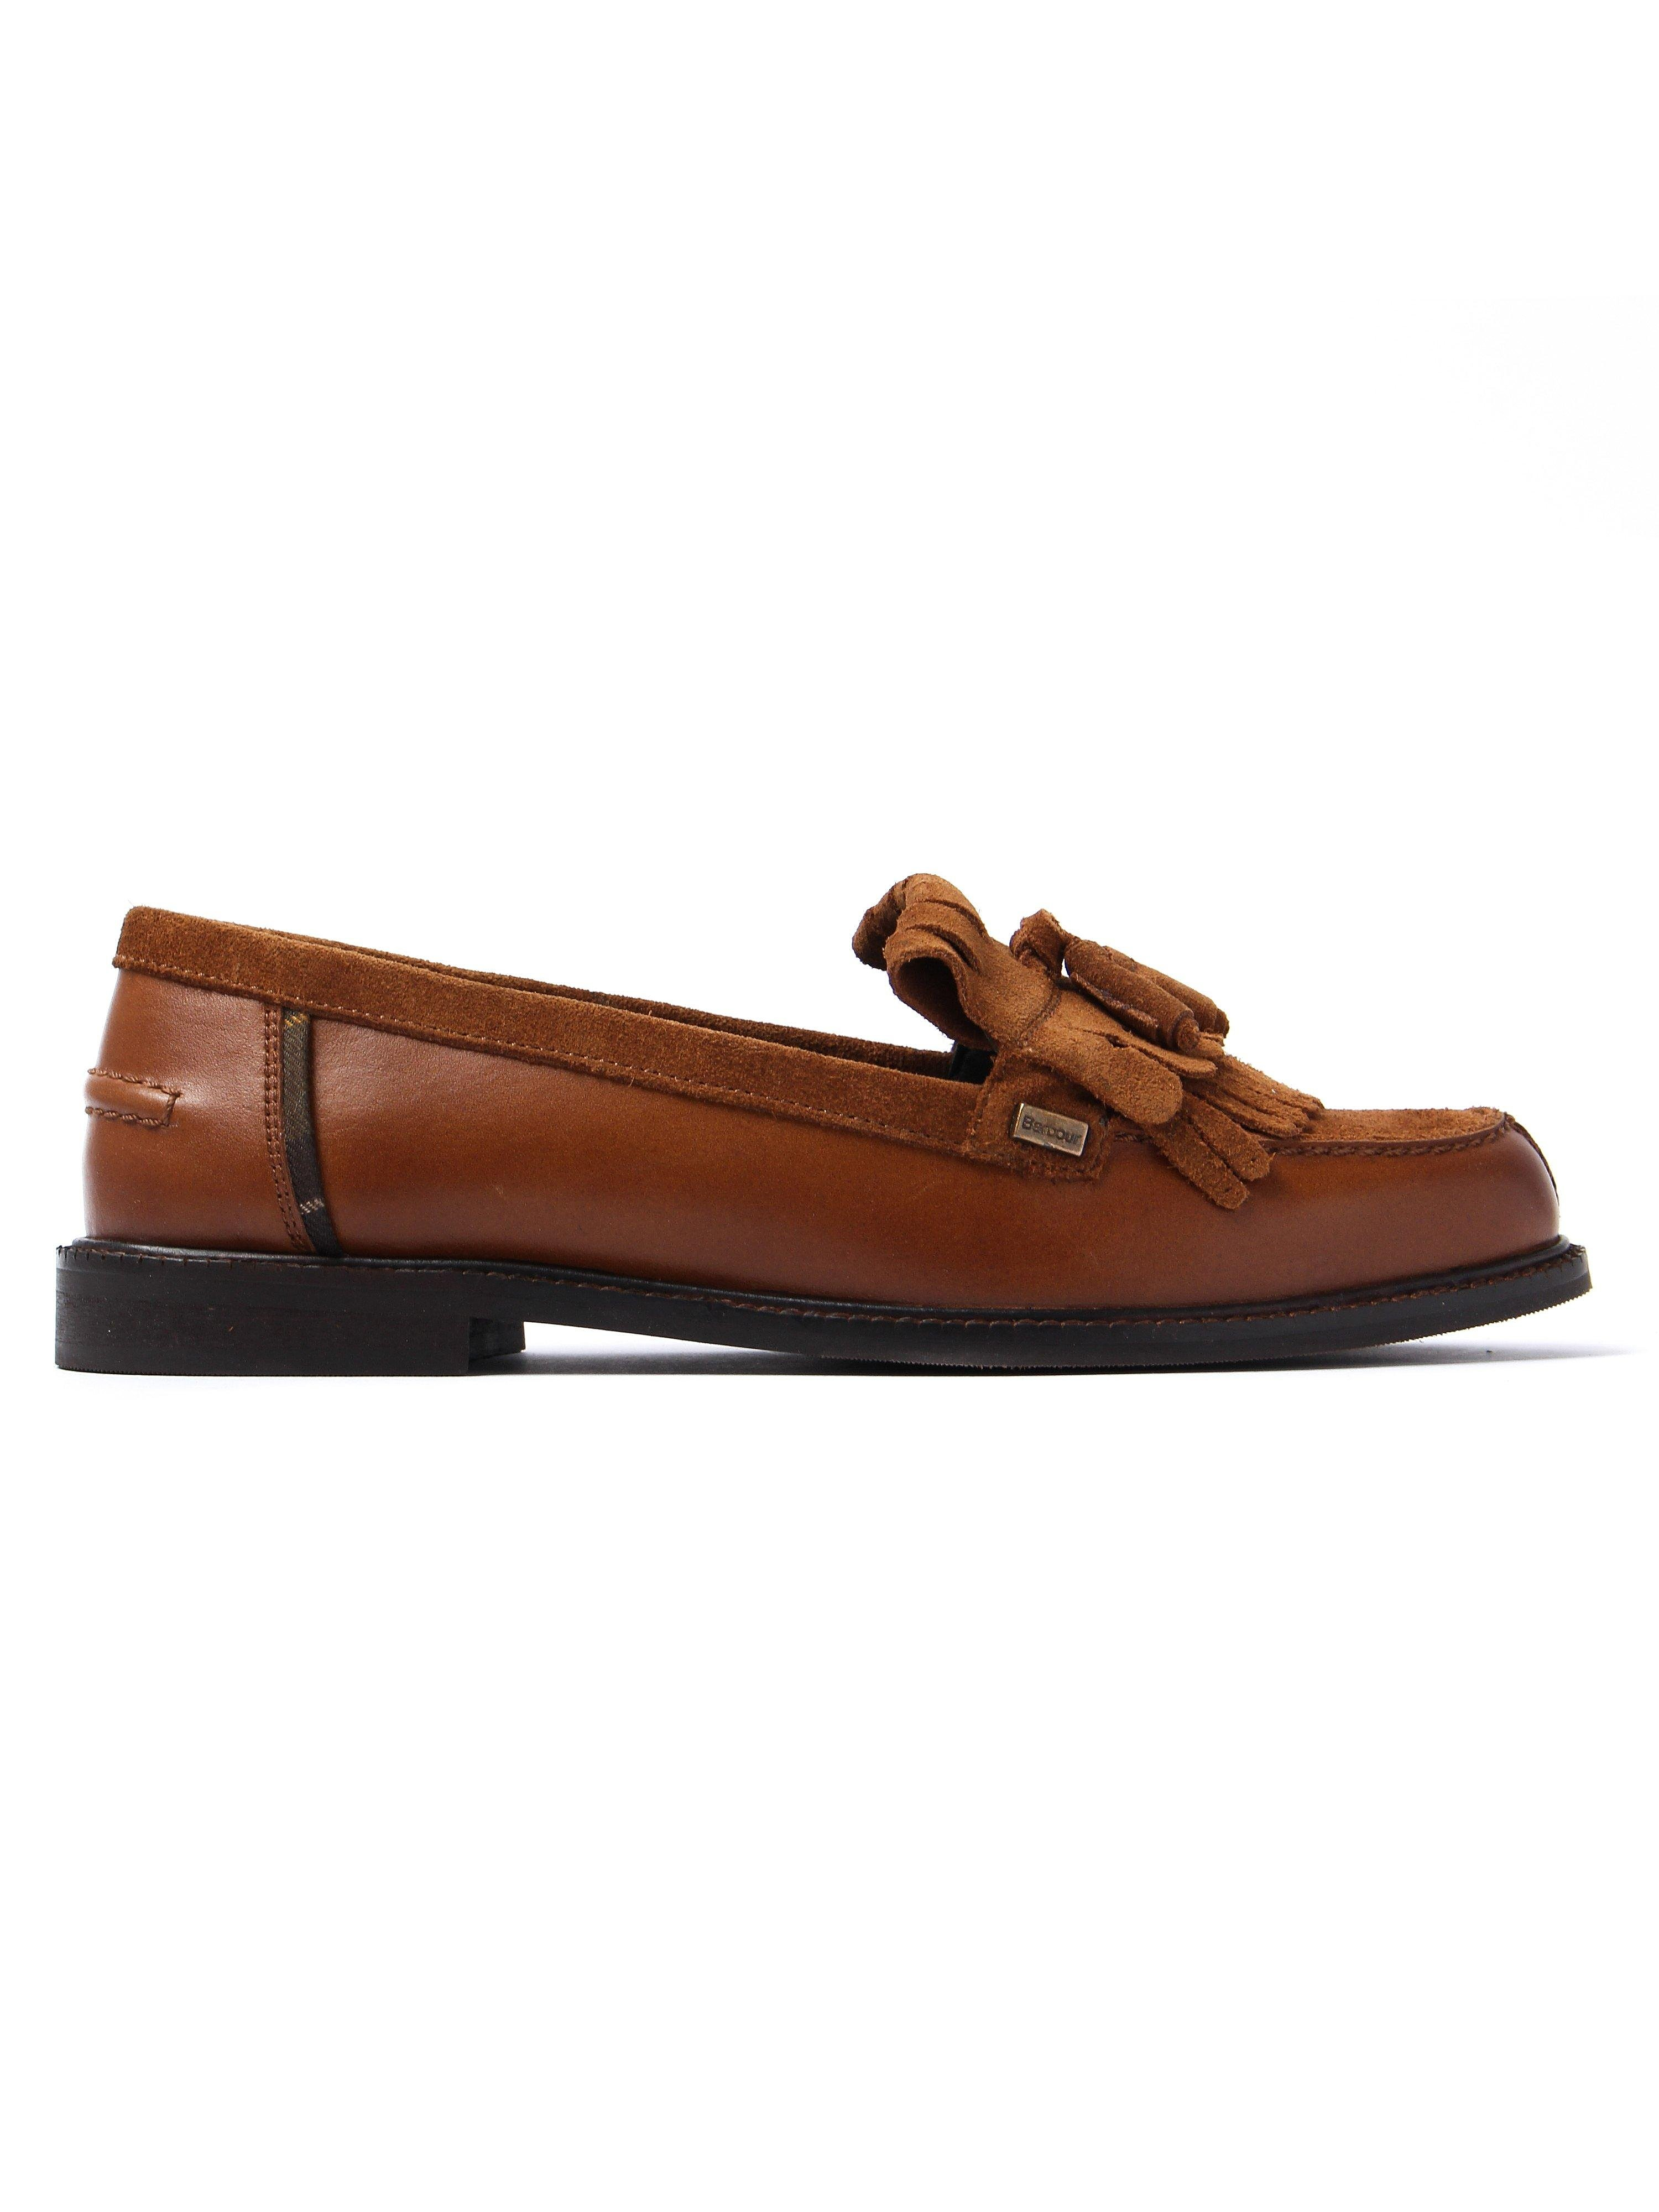 Barbour Women's Olivia Oiled Leather Tassel Loafers - Tan